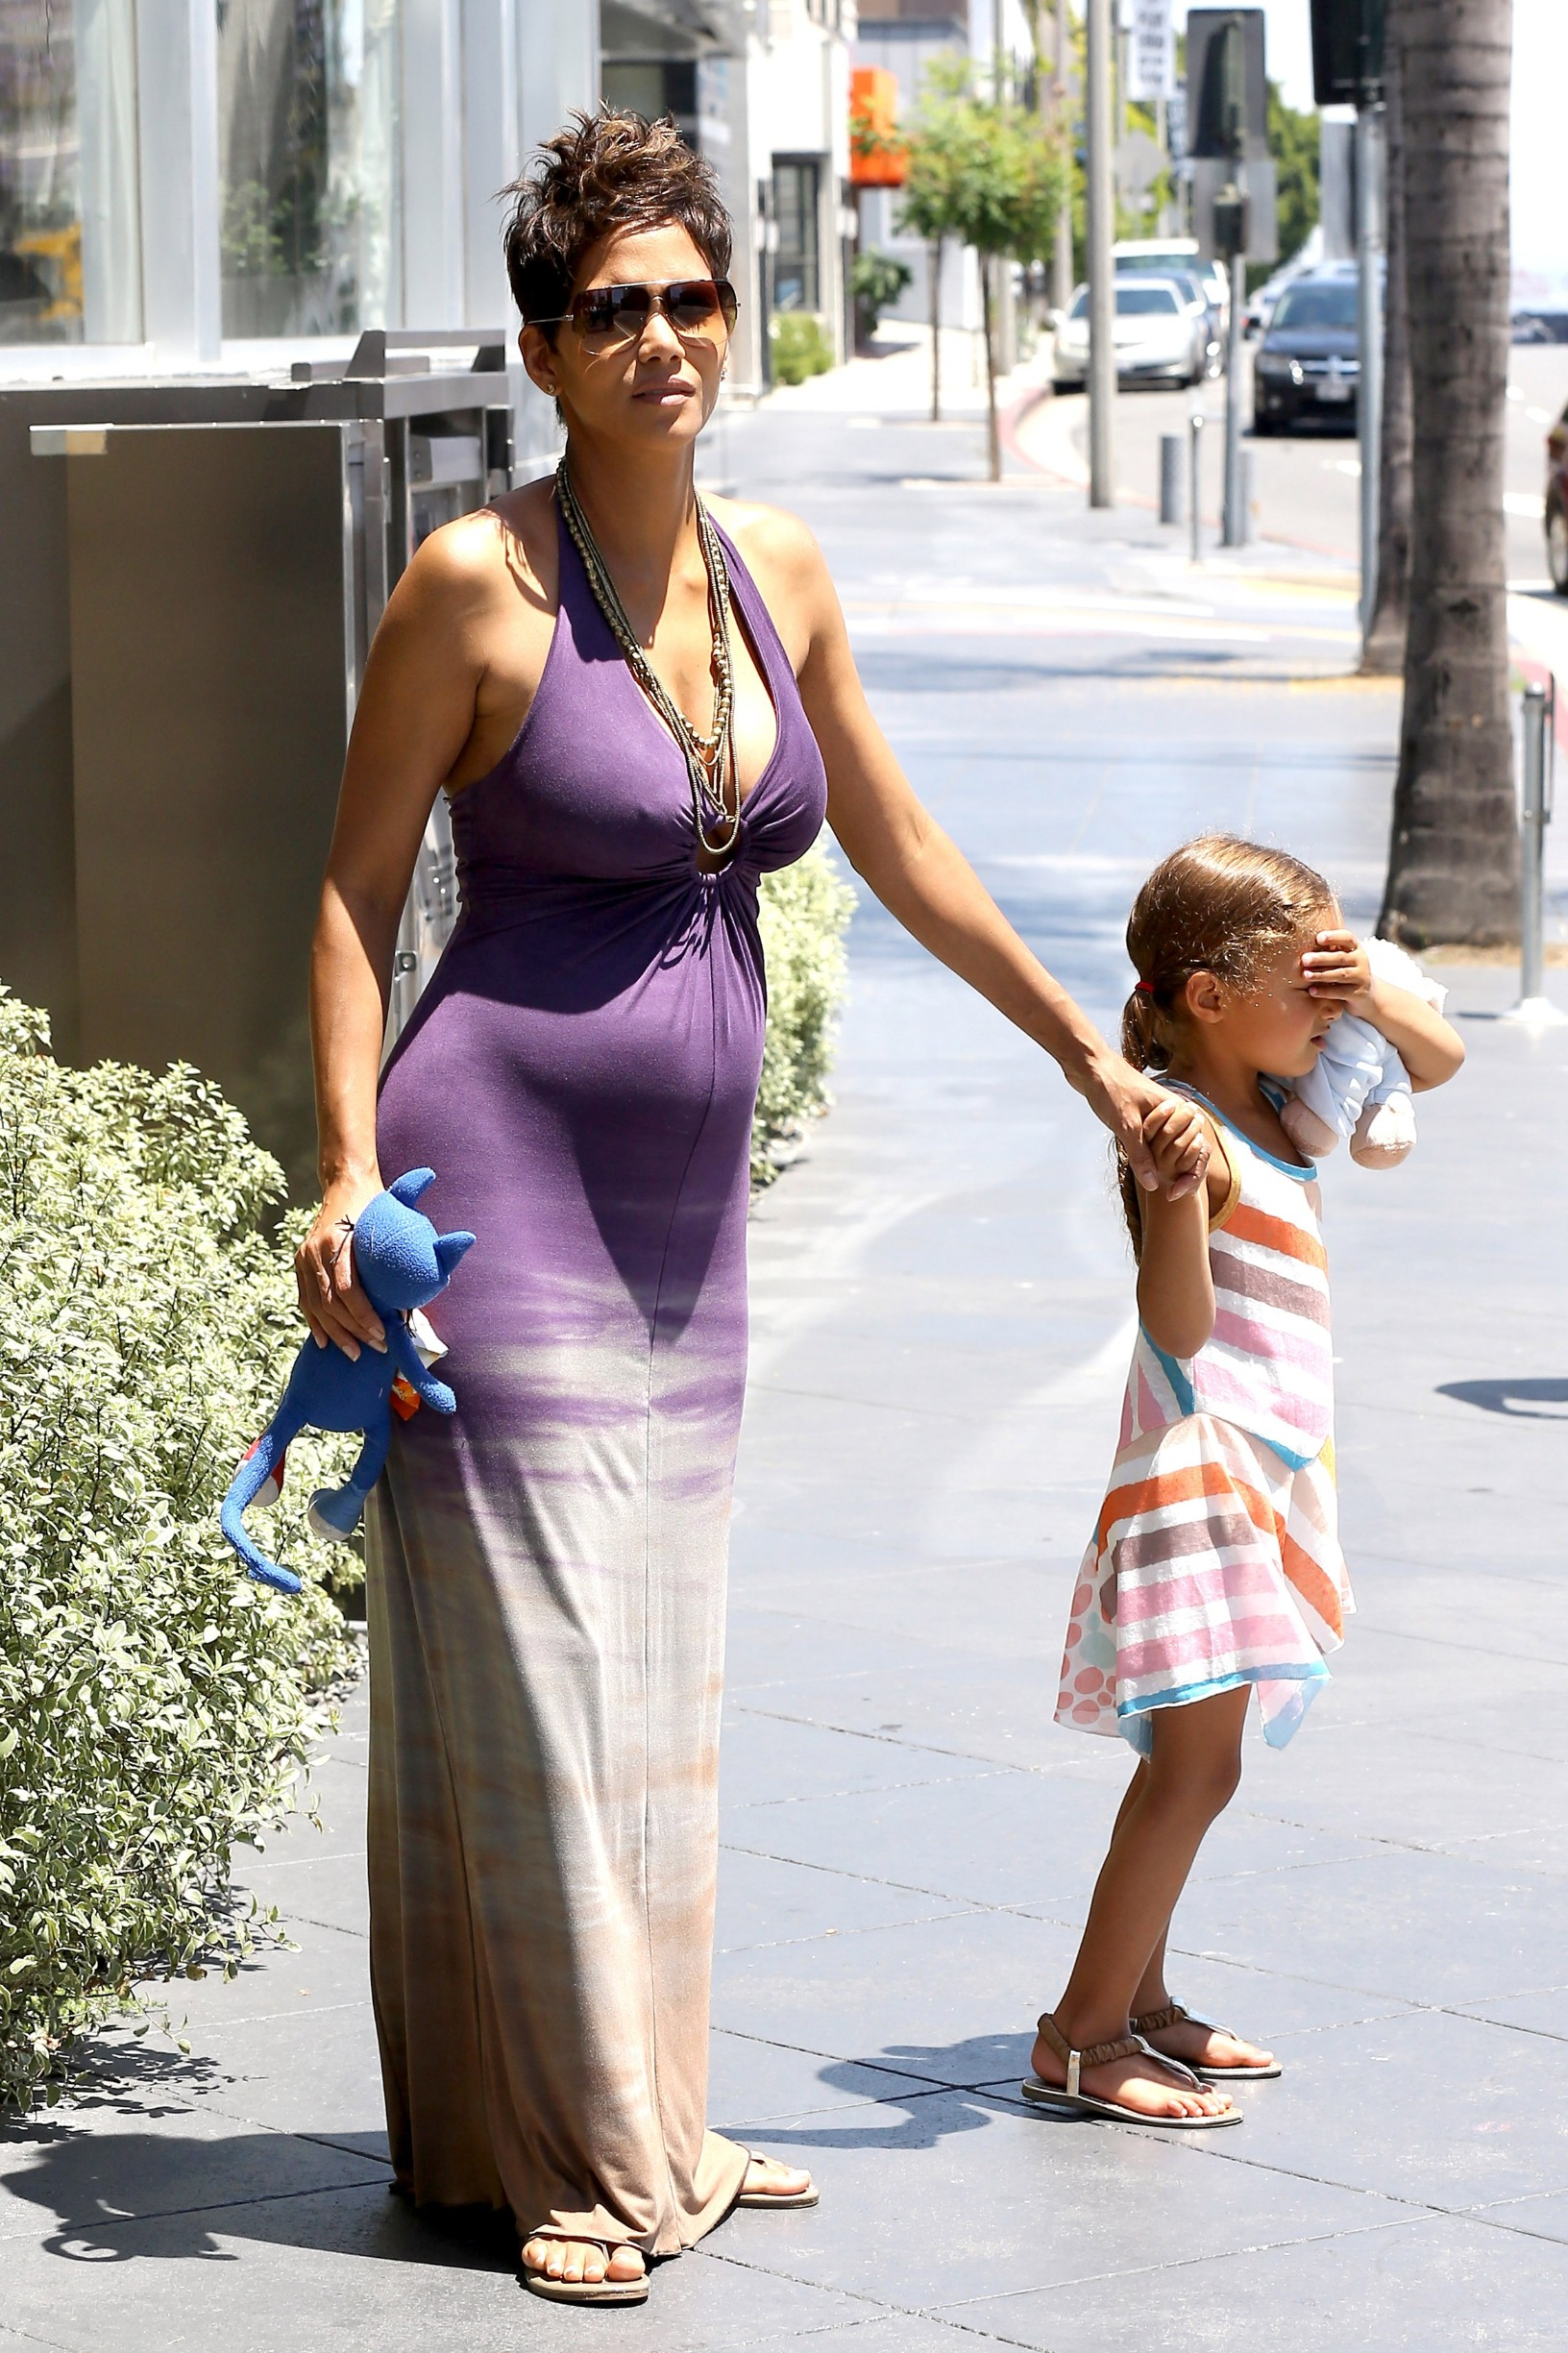 West Hollywood, CA - Olivier Martinez takes his pregnant fiancé Halle Berry and her daughter out to a nice Mother's Day lunch at Riva Bella in West Hollywood. Halle, expecting her second child and first with Olivier, showed her growing baby bump in a purple tie dye halter maxi dress.           May 12, 2013,Image: 161202718, License: Rights-managed, Restrictions: World Rights,World Rights, Model Release: no, Credit line: AKM Images / Backgrid USA / Profimedia